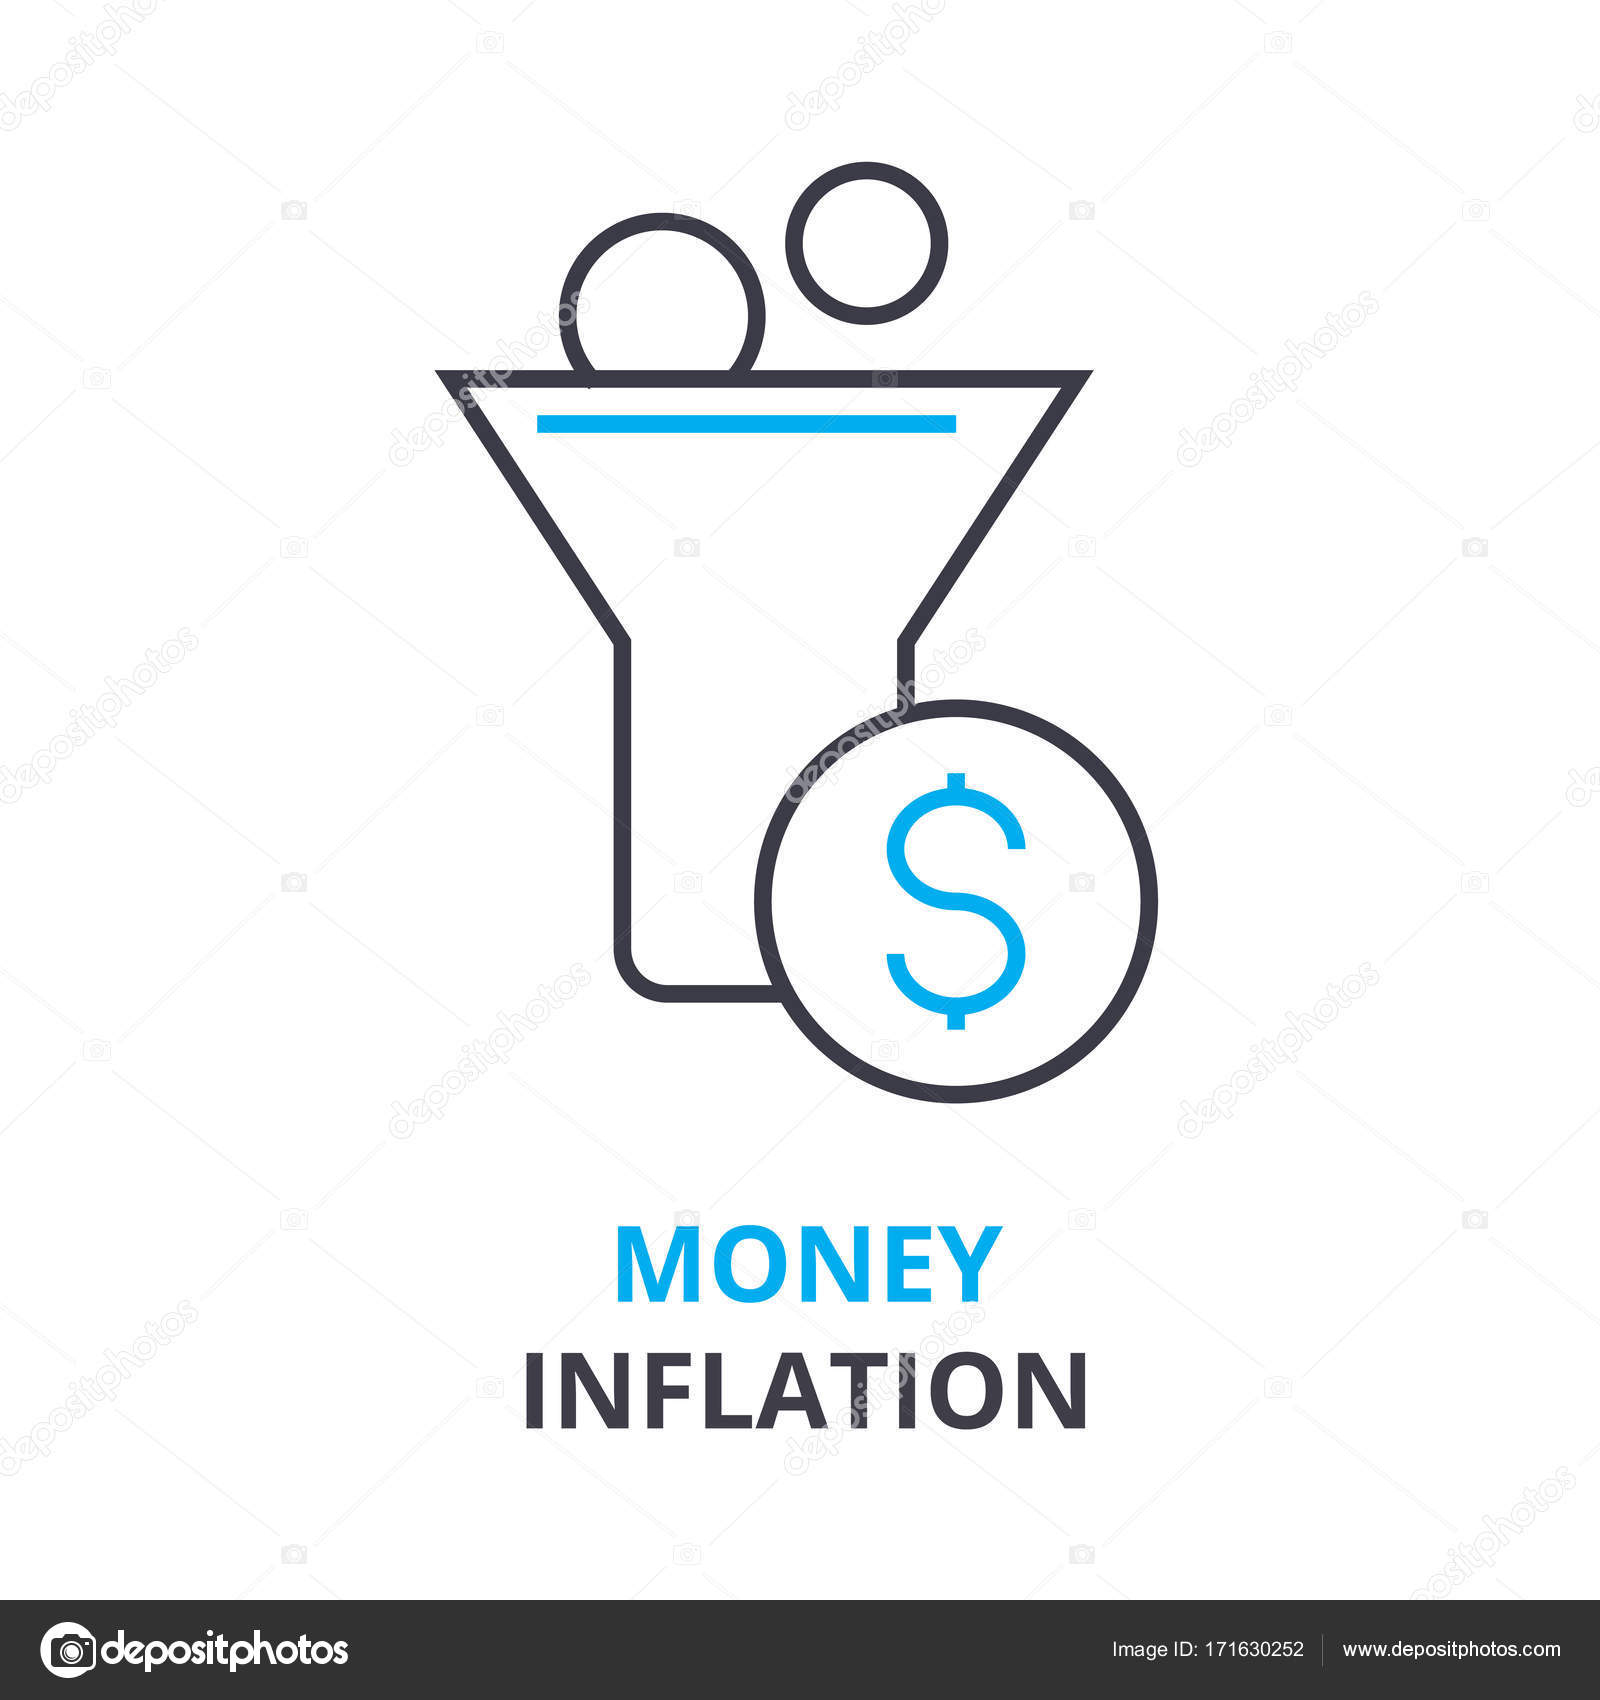 Money inflation concept outline icon linear sign thin line money inflation concept outline icon linear sign thin line pictogram logo flat vector illustration vector by iconsgraph ccuart Images